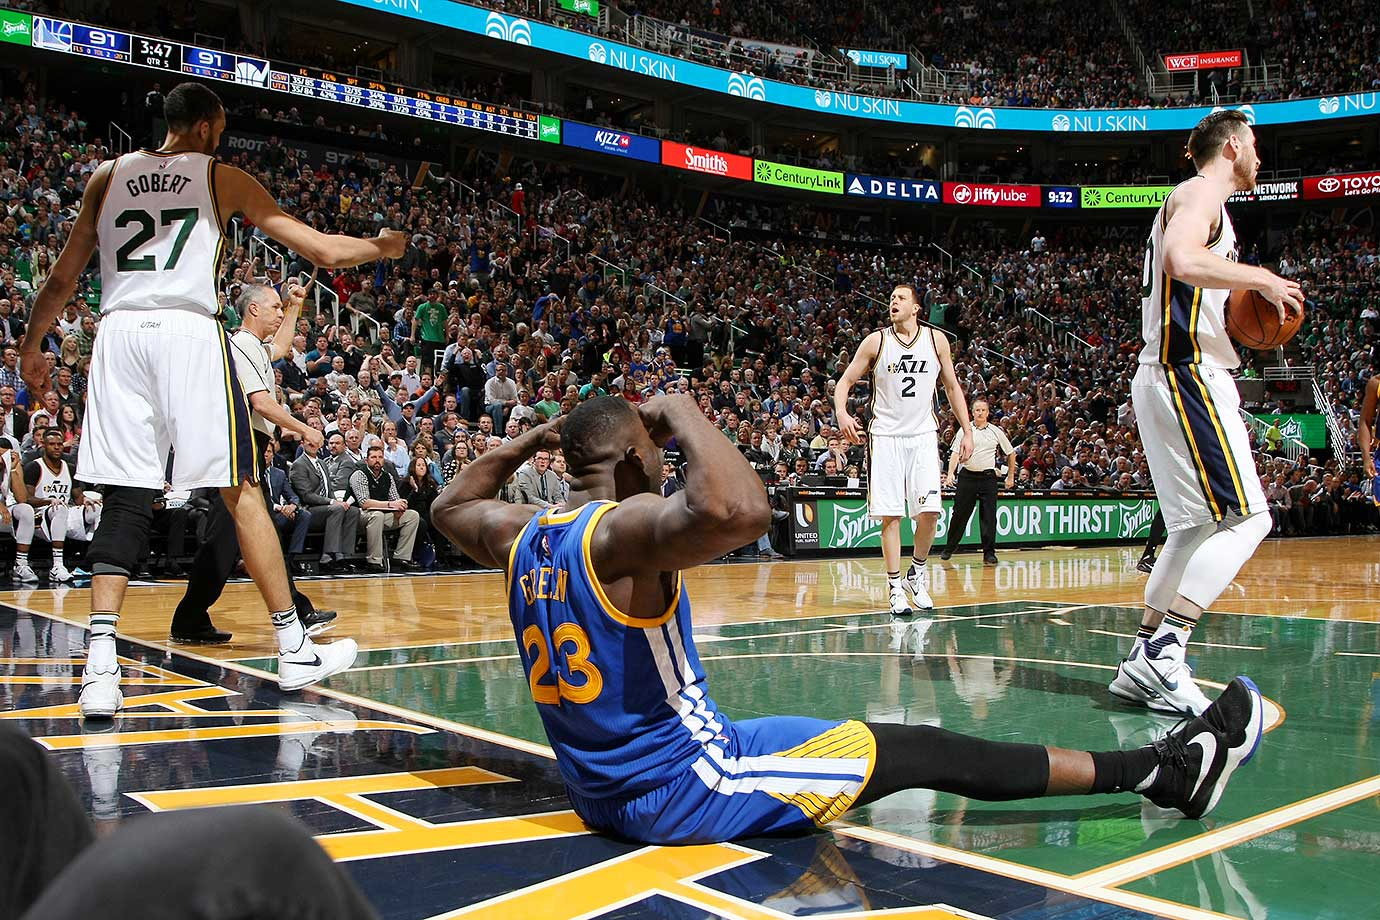 Draymond Green of the Warriors celebrates on a night when Golden State was held to fewer than 43 points in the first half for just the third time this season.